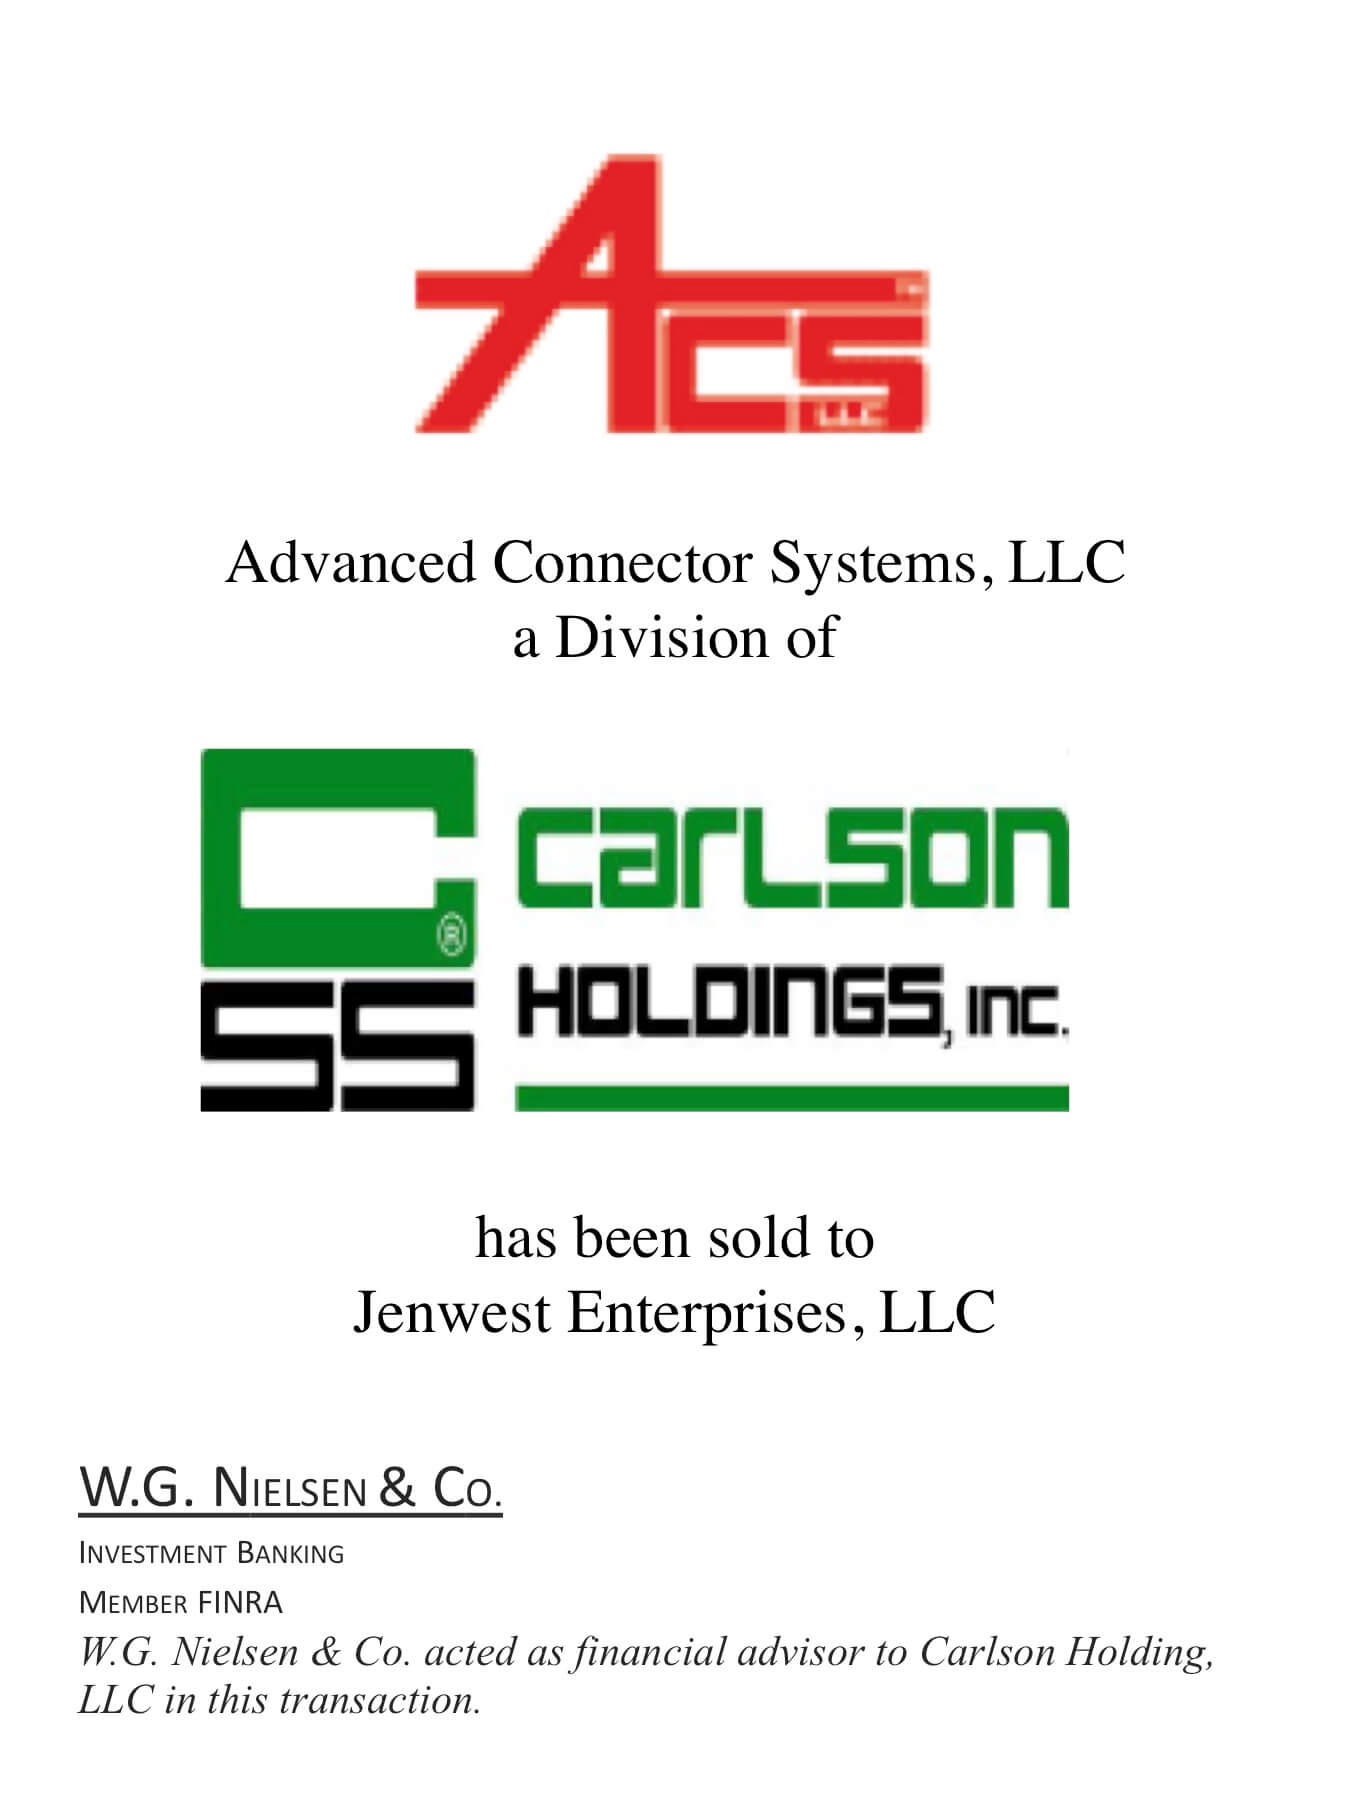 advanced connector systems investment banking transaction